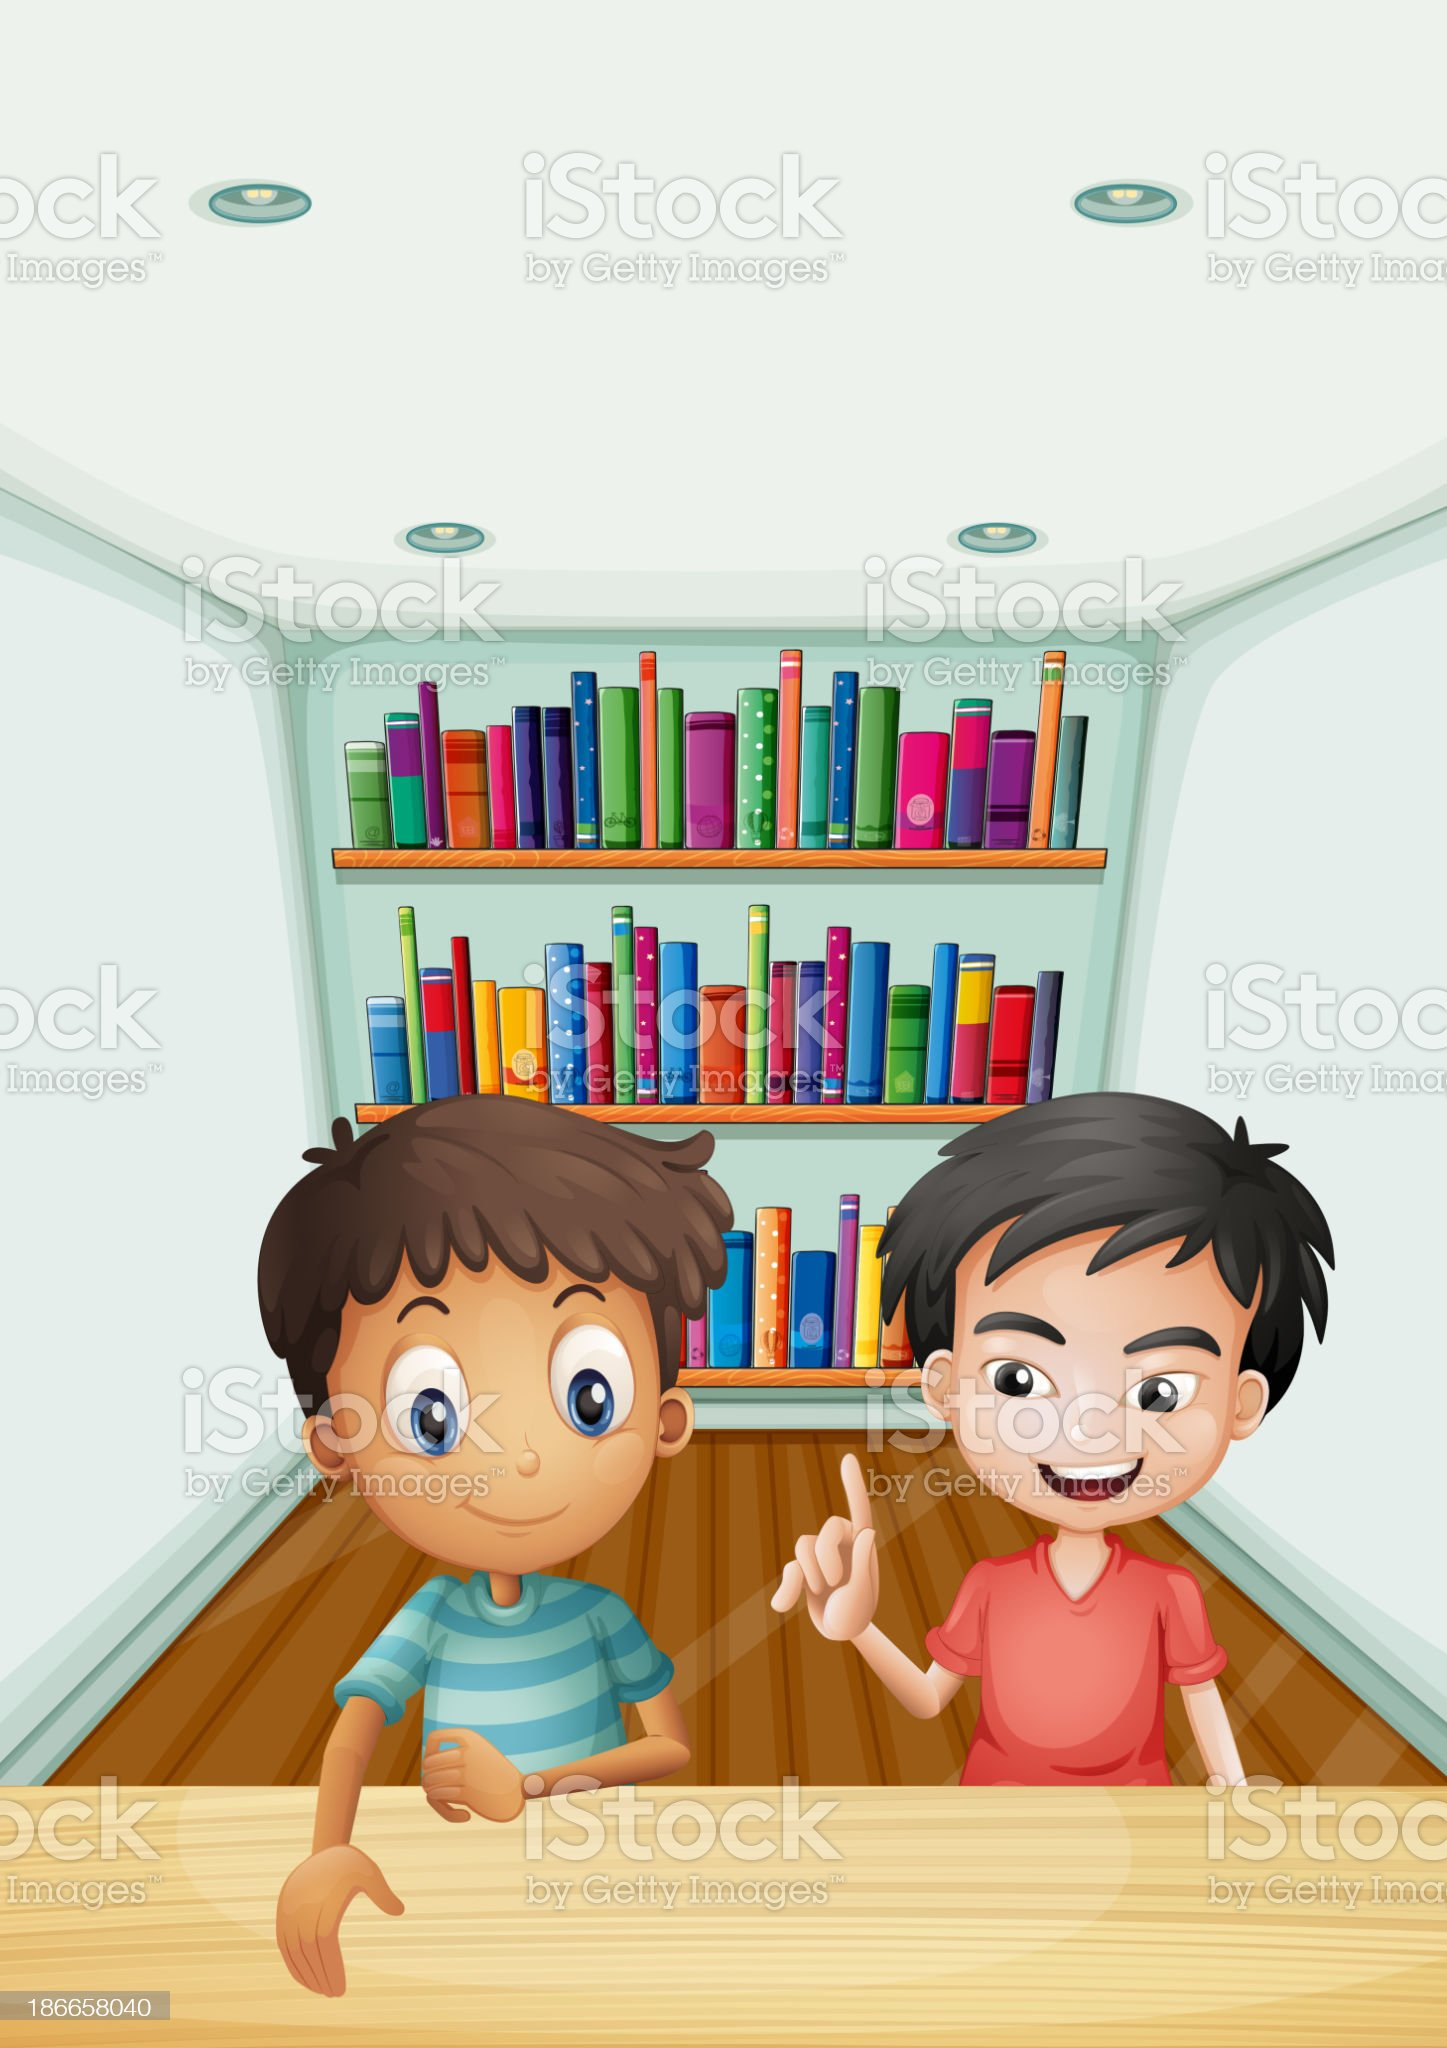 Two boys in front of the bookshelves with books royalty-free stock vector art